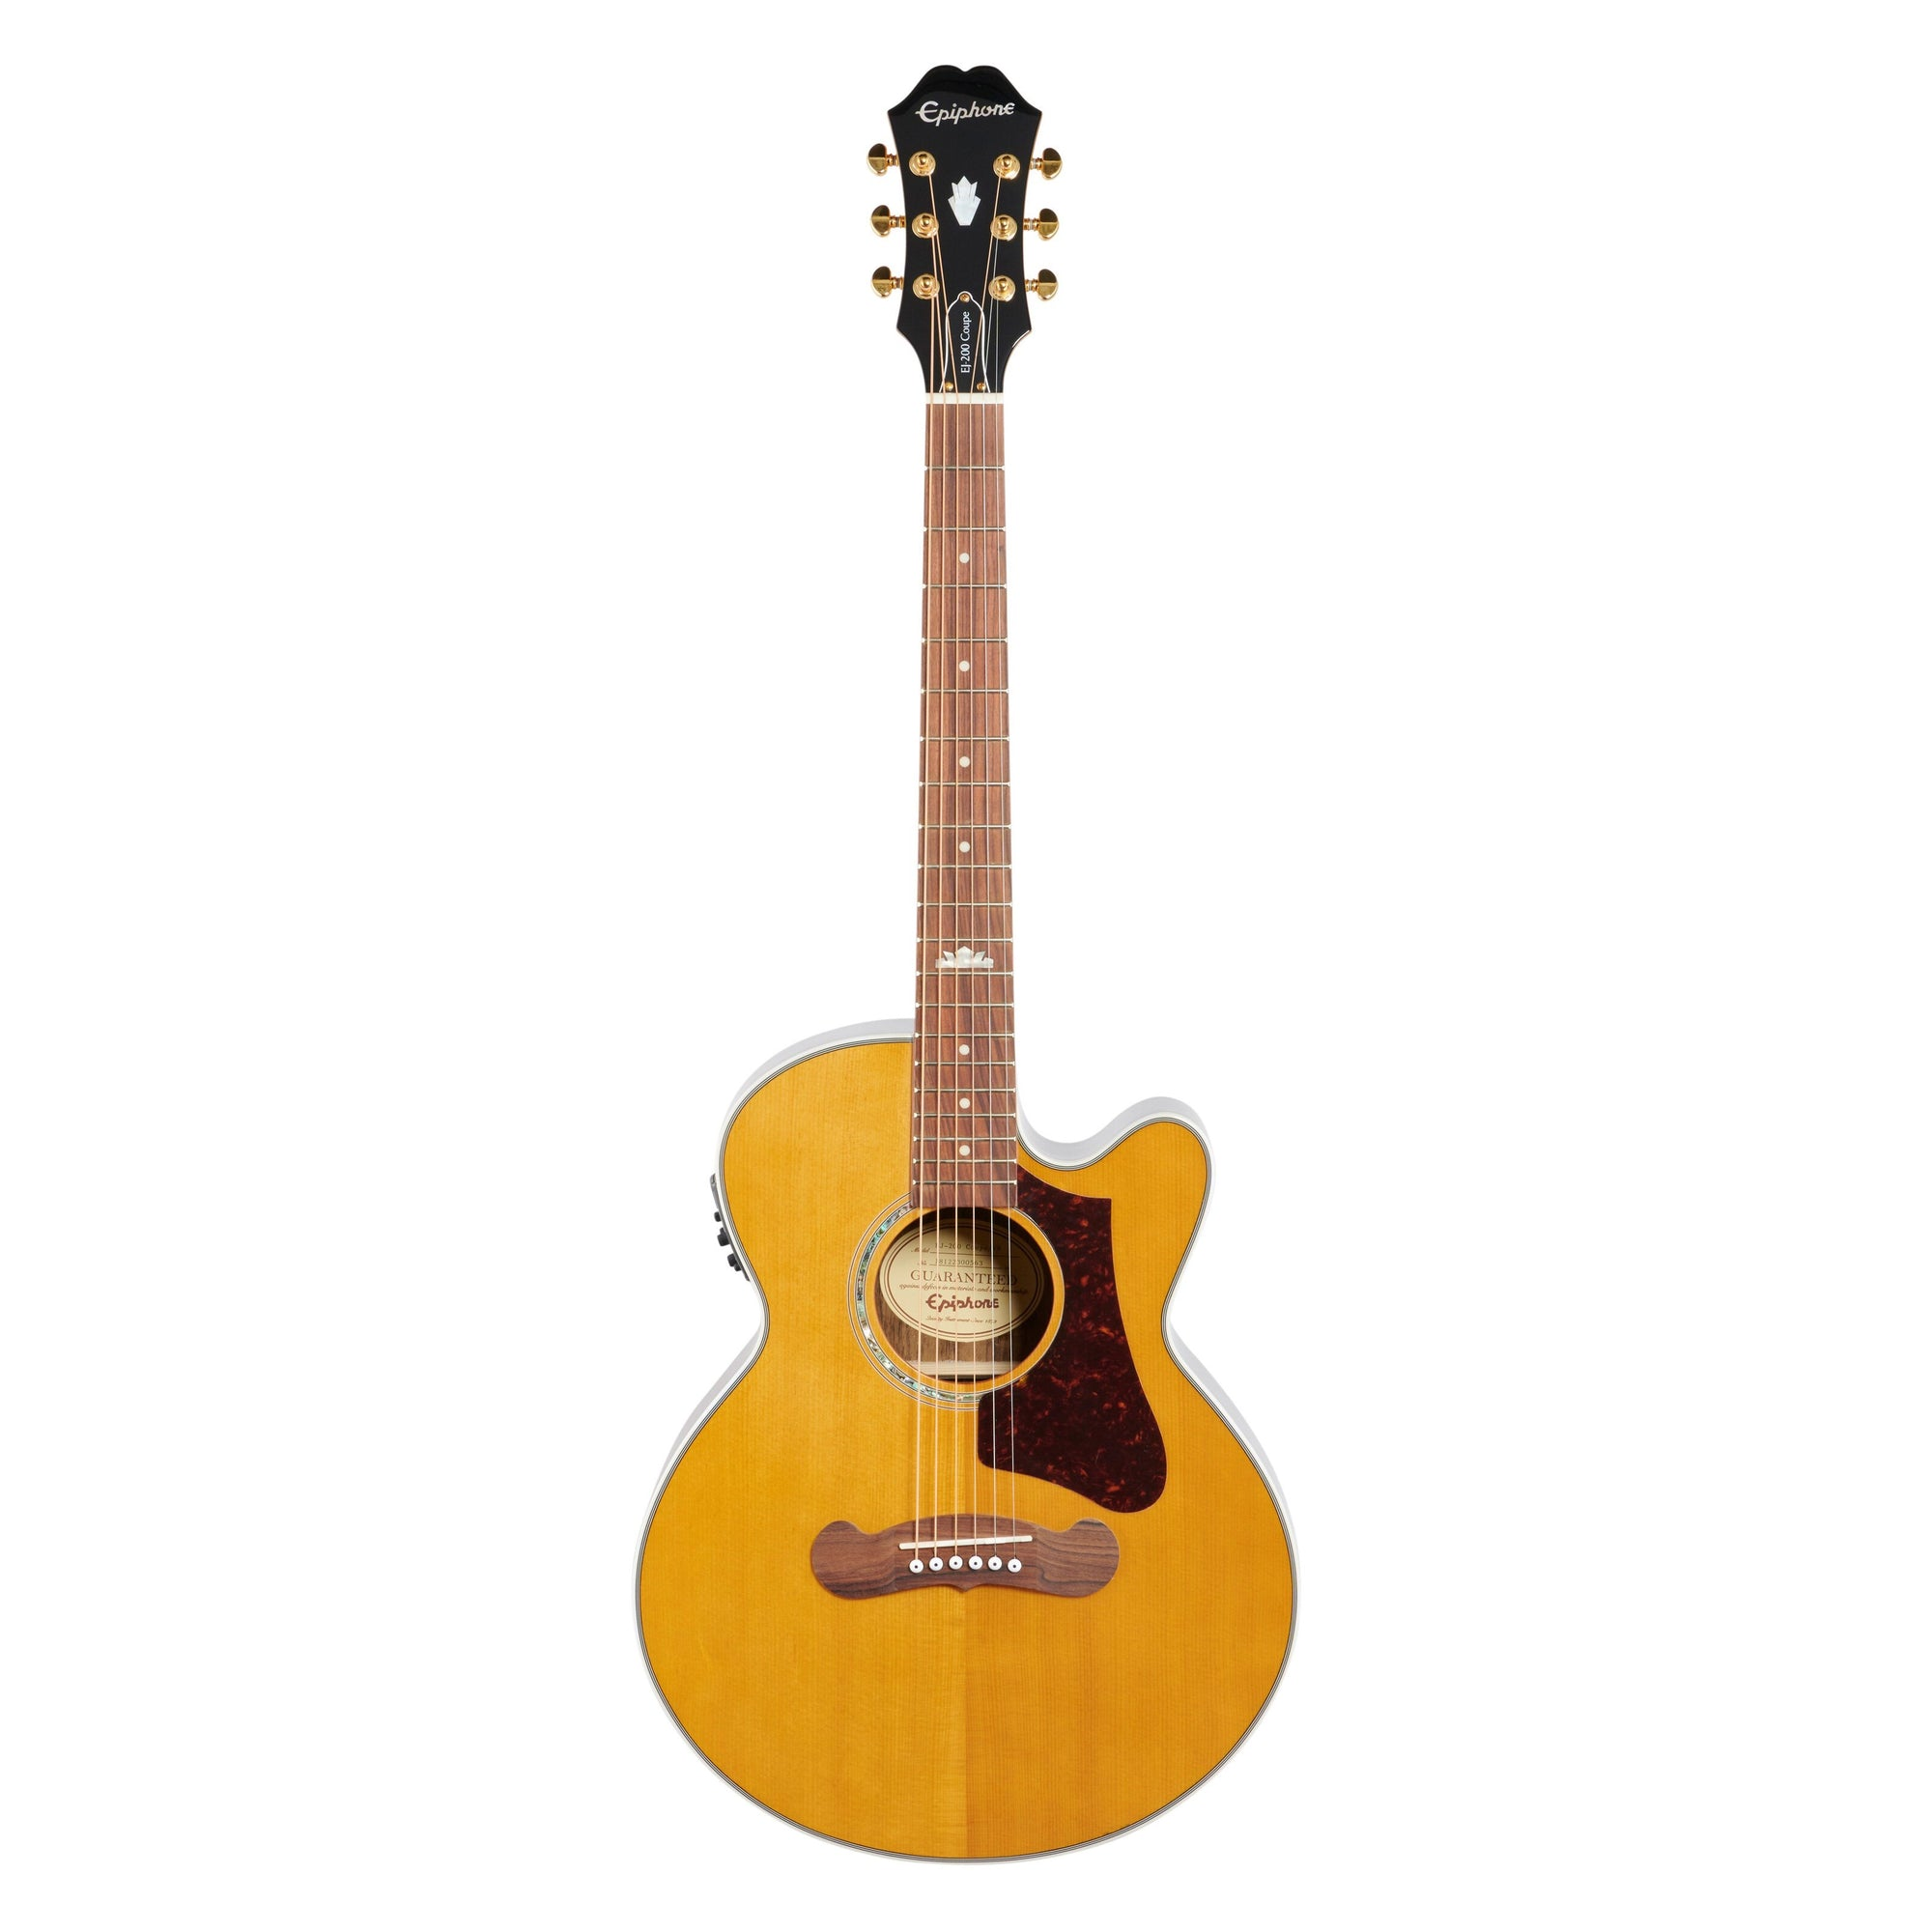 Epiphone EJ-200 SCE Coupe Travel Acoustic-Electric Guitar, Vintage Natural